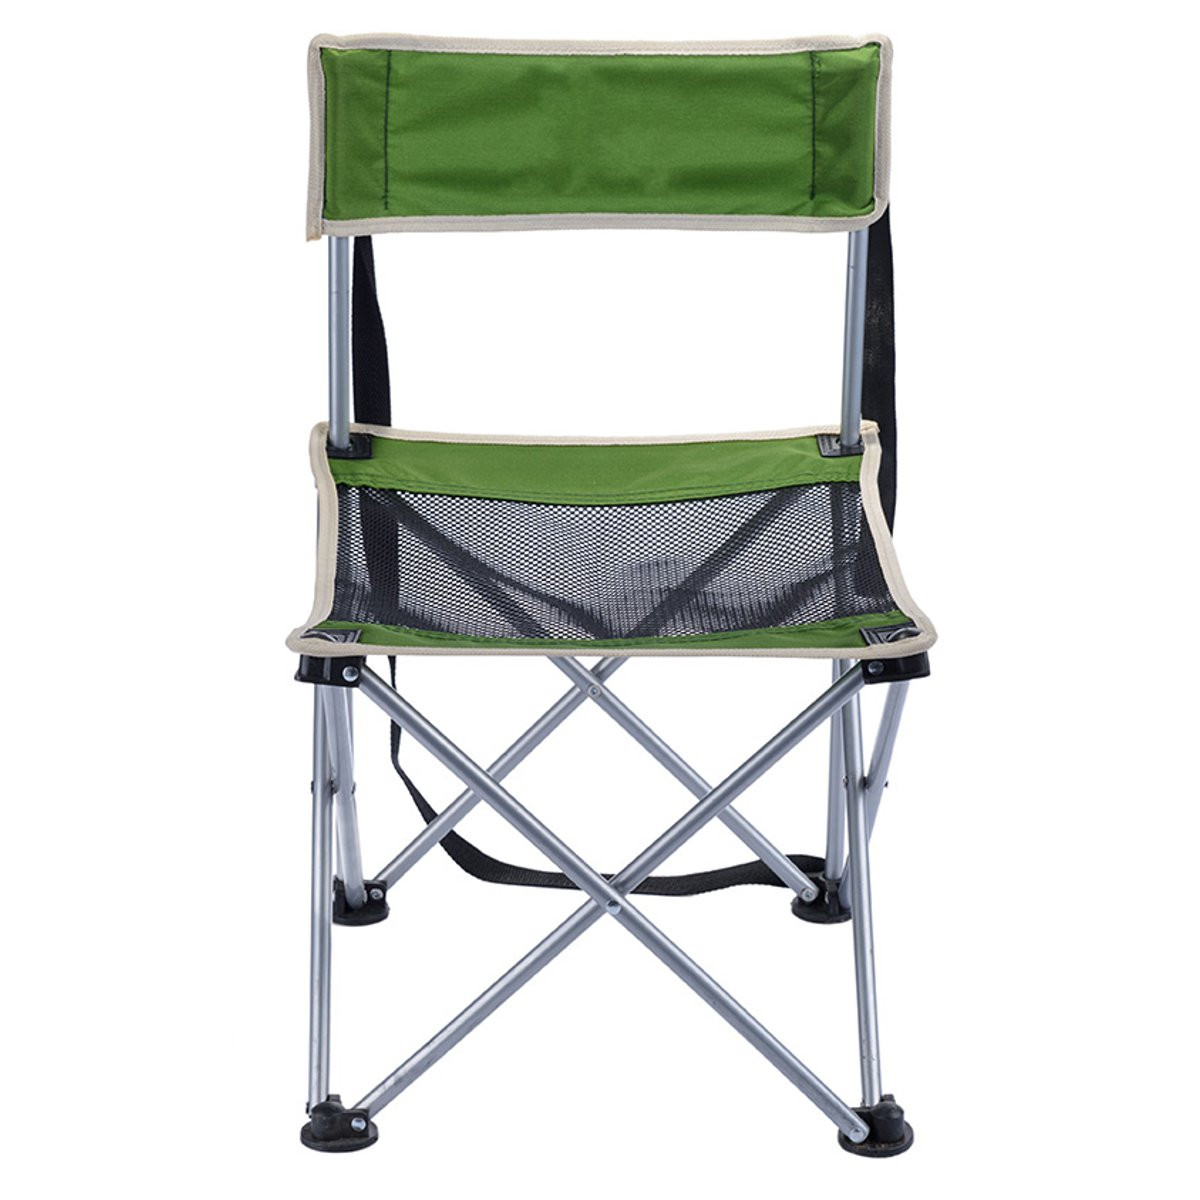 Outdoor camping portable folding chair lightweight fishing for Best folding chairs outdoor